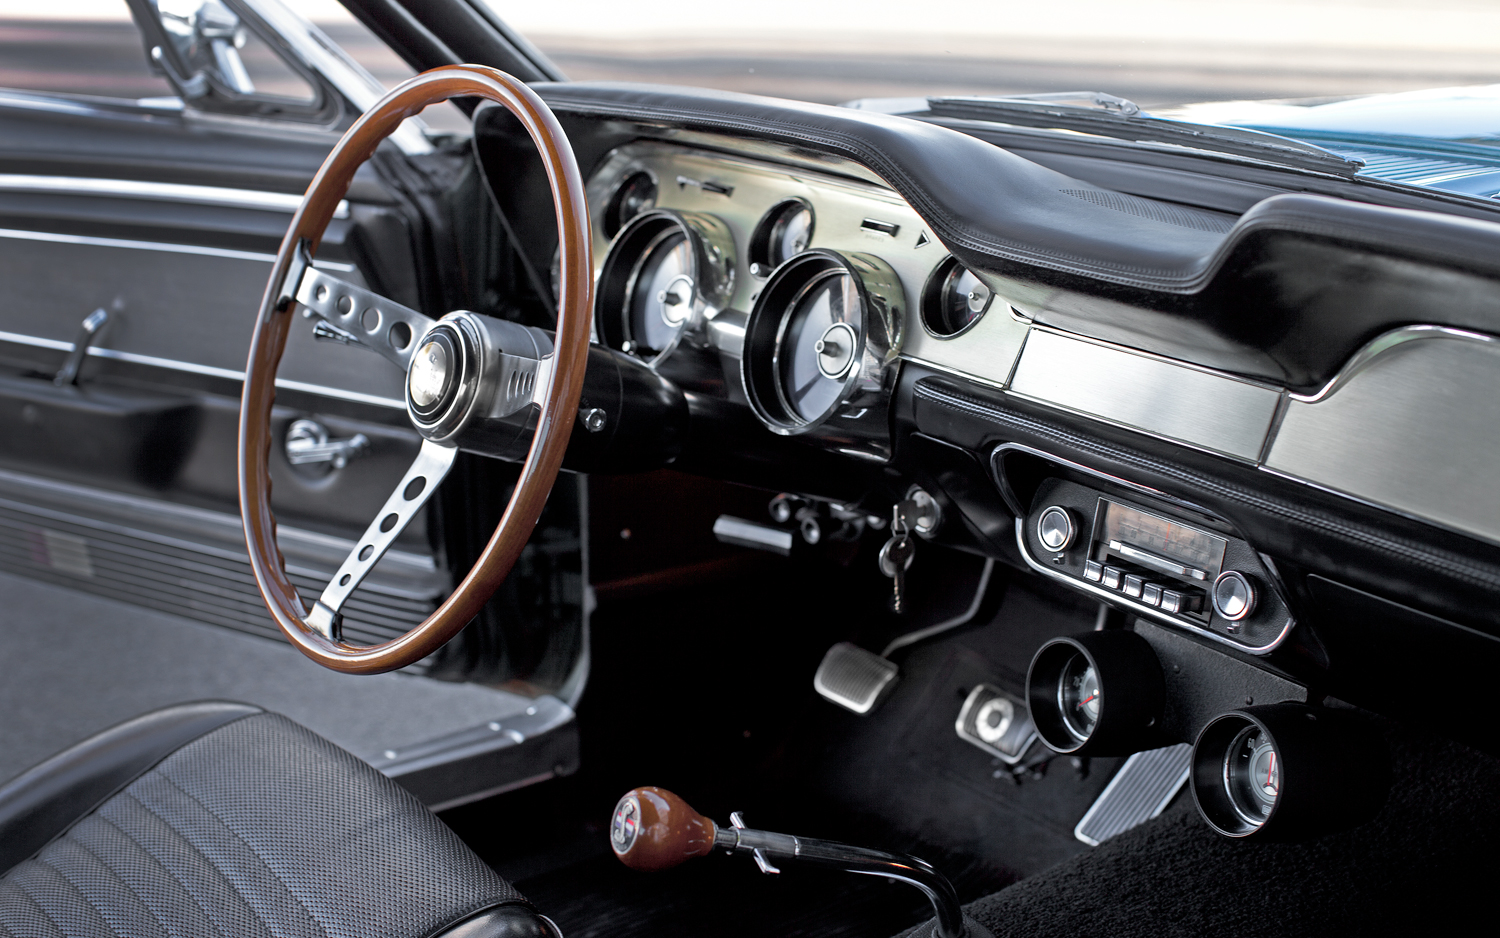 3dtuning Of Mustang Shelby Gt500 Coupe 1967 3dtuning Com